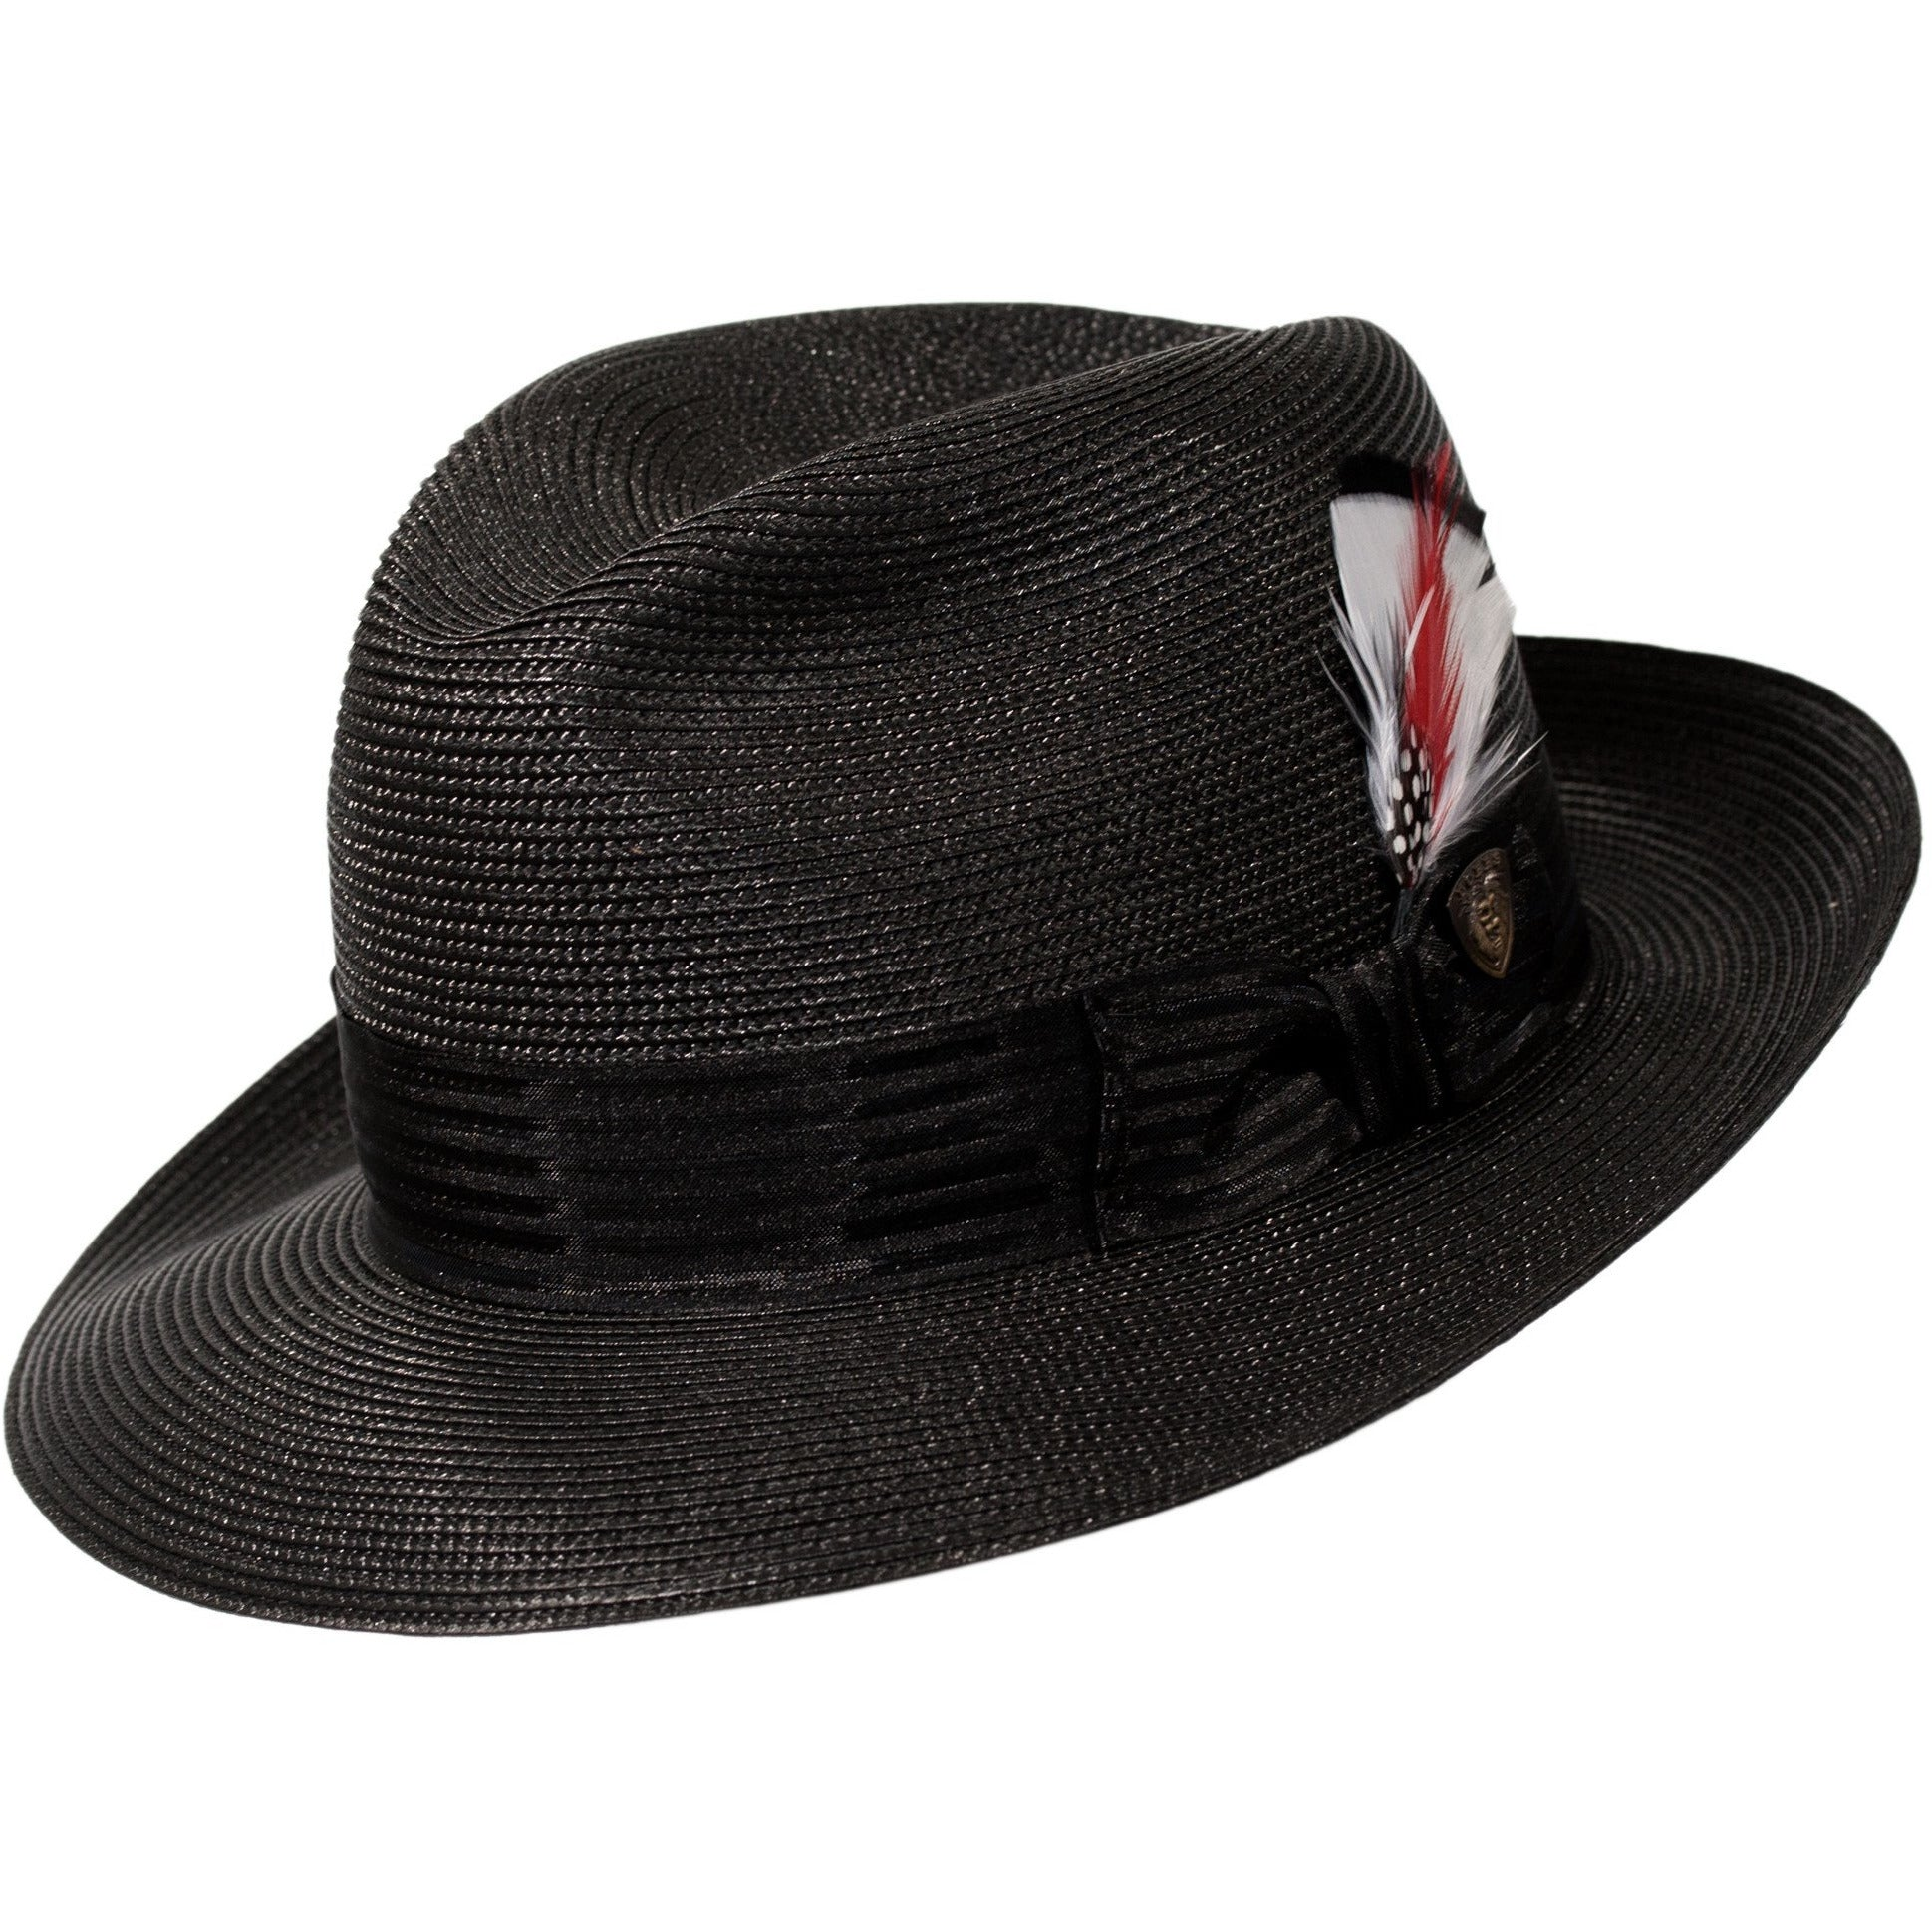 Harrod Milan Straw Fedora by Stetson – Levine Hat Co. 466bd8c9dfc